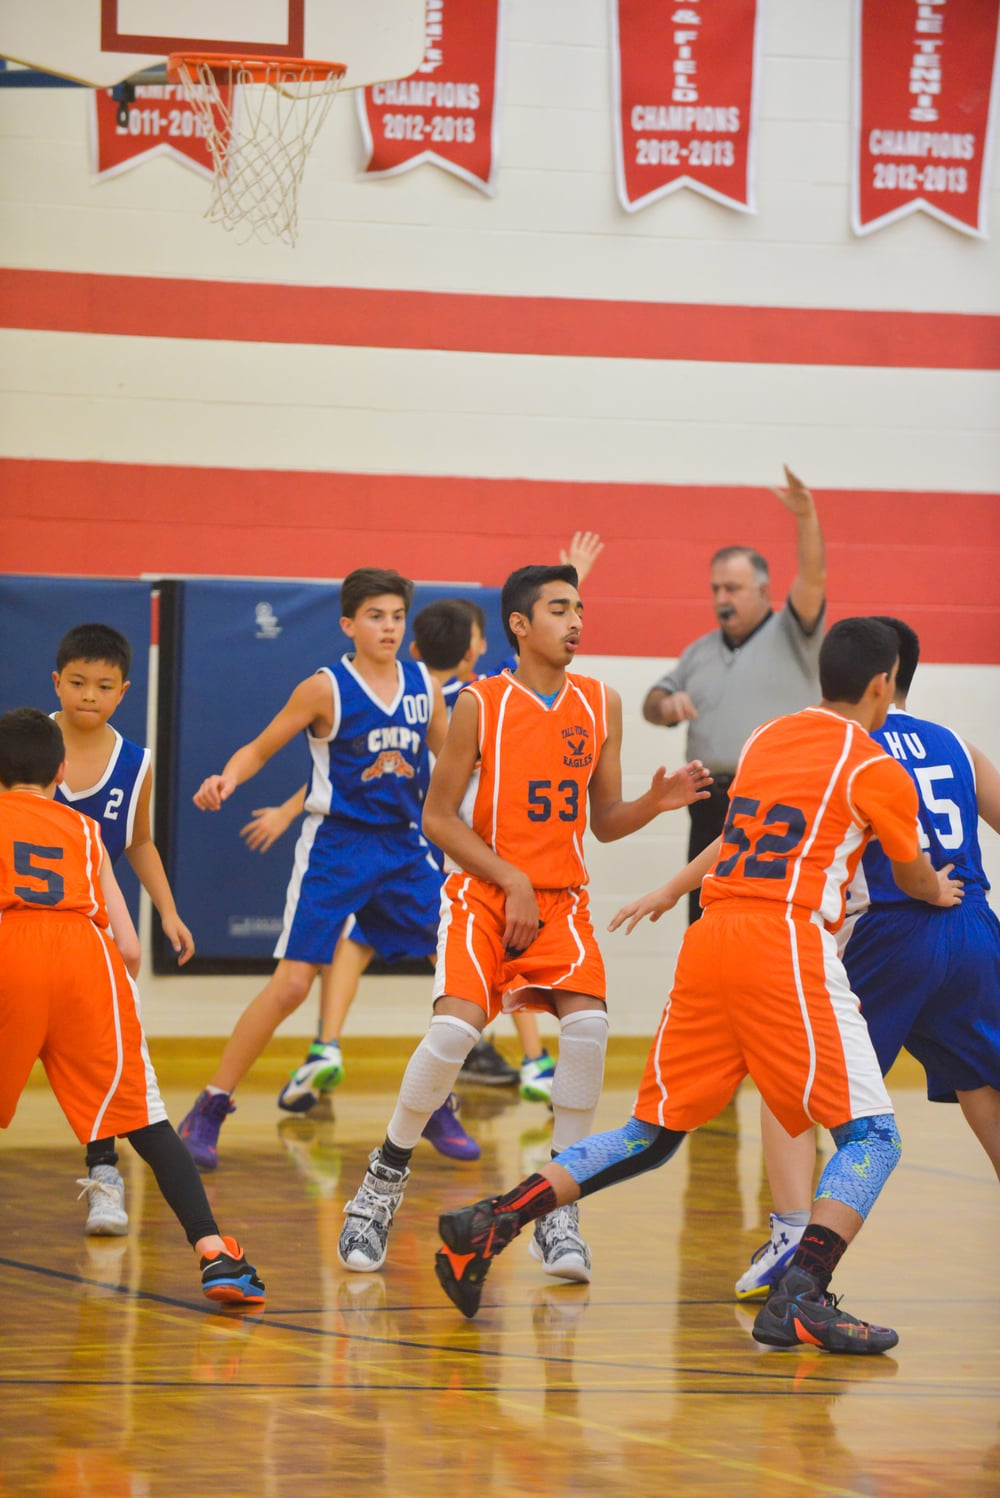 U14 Basketball vs TCMPS (2 of 14).jpg